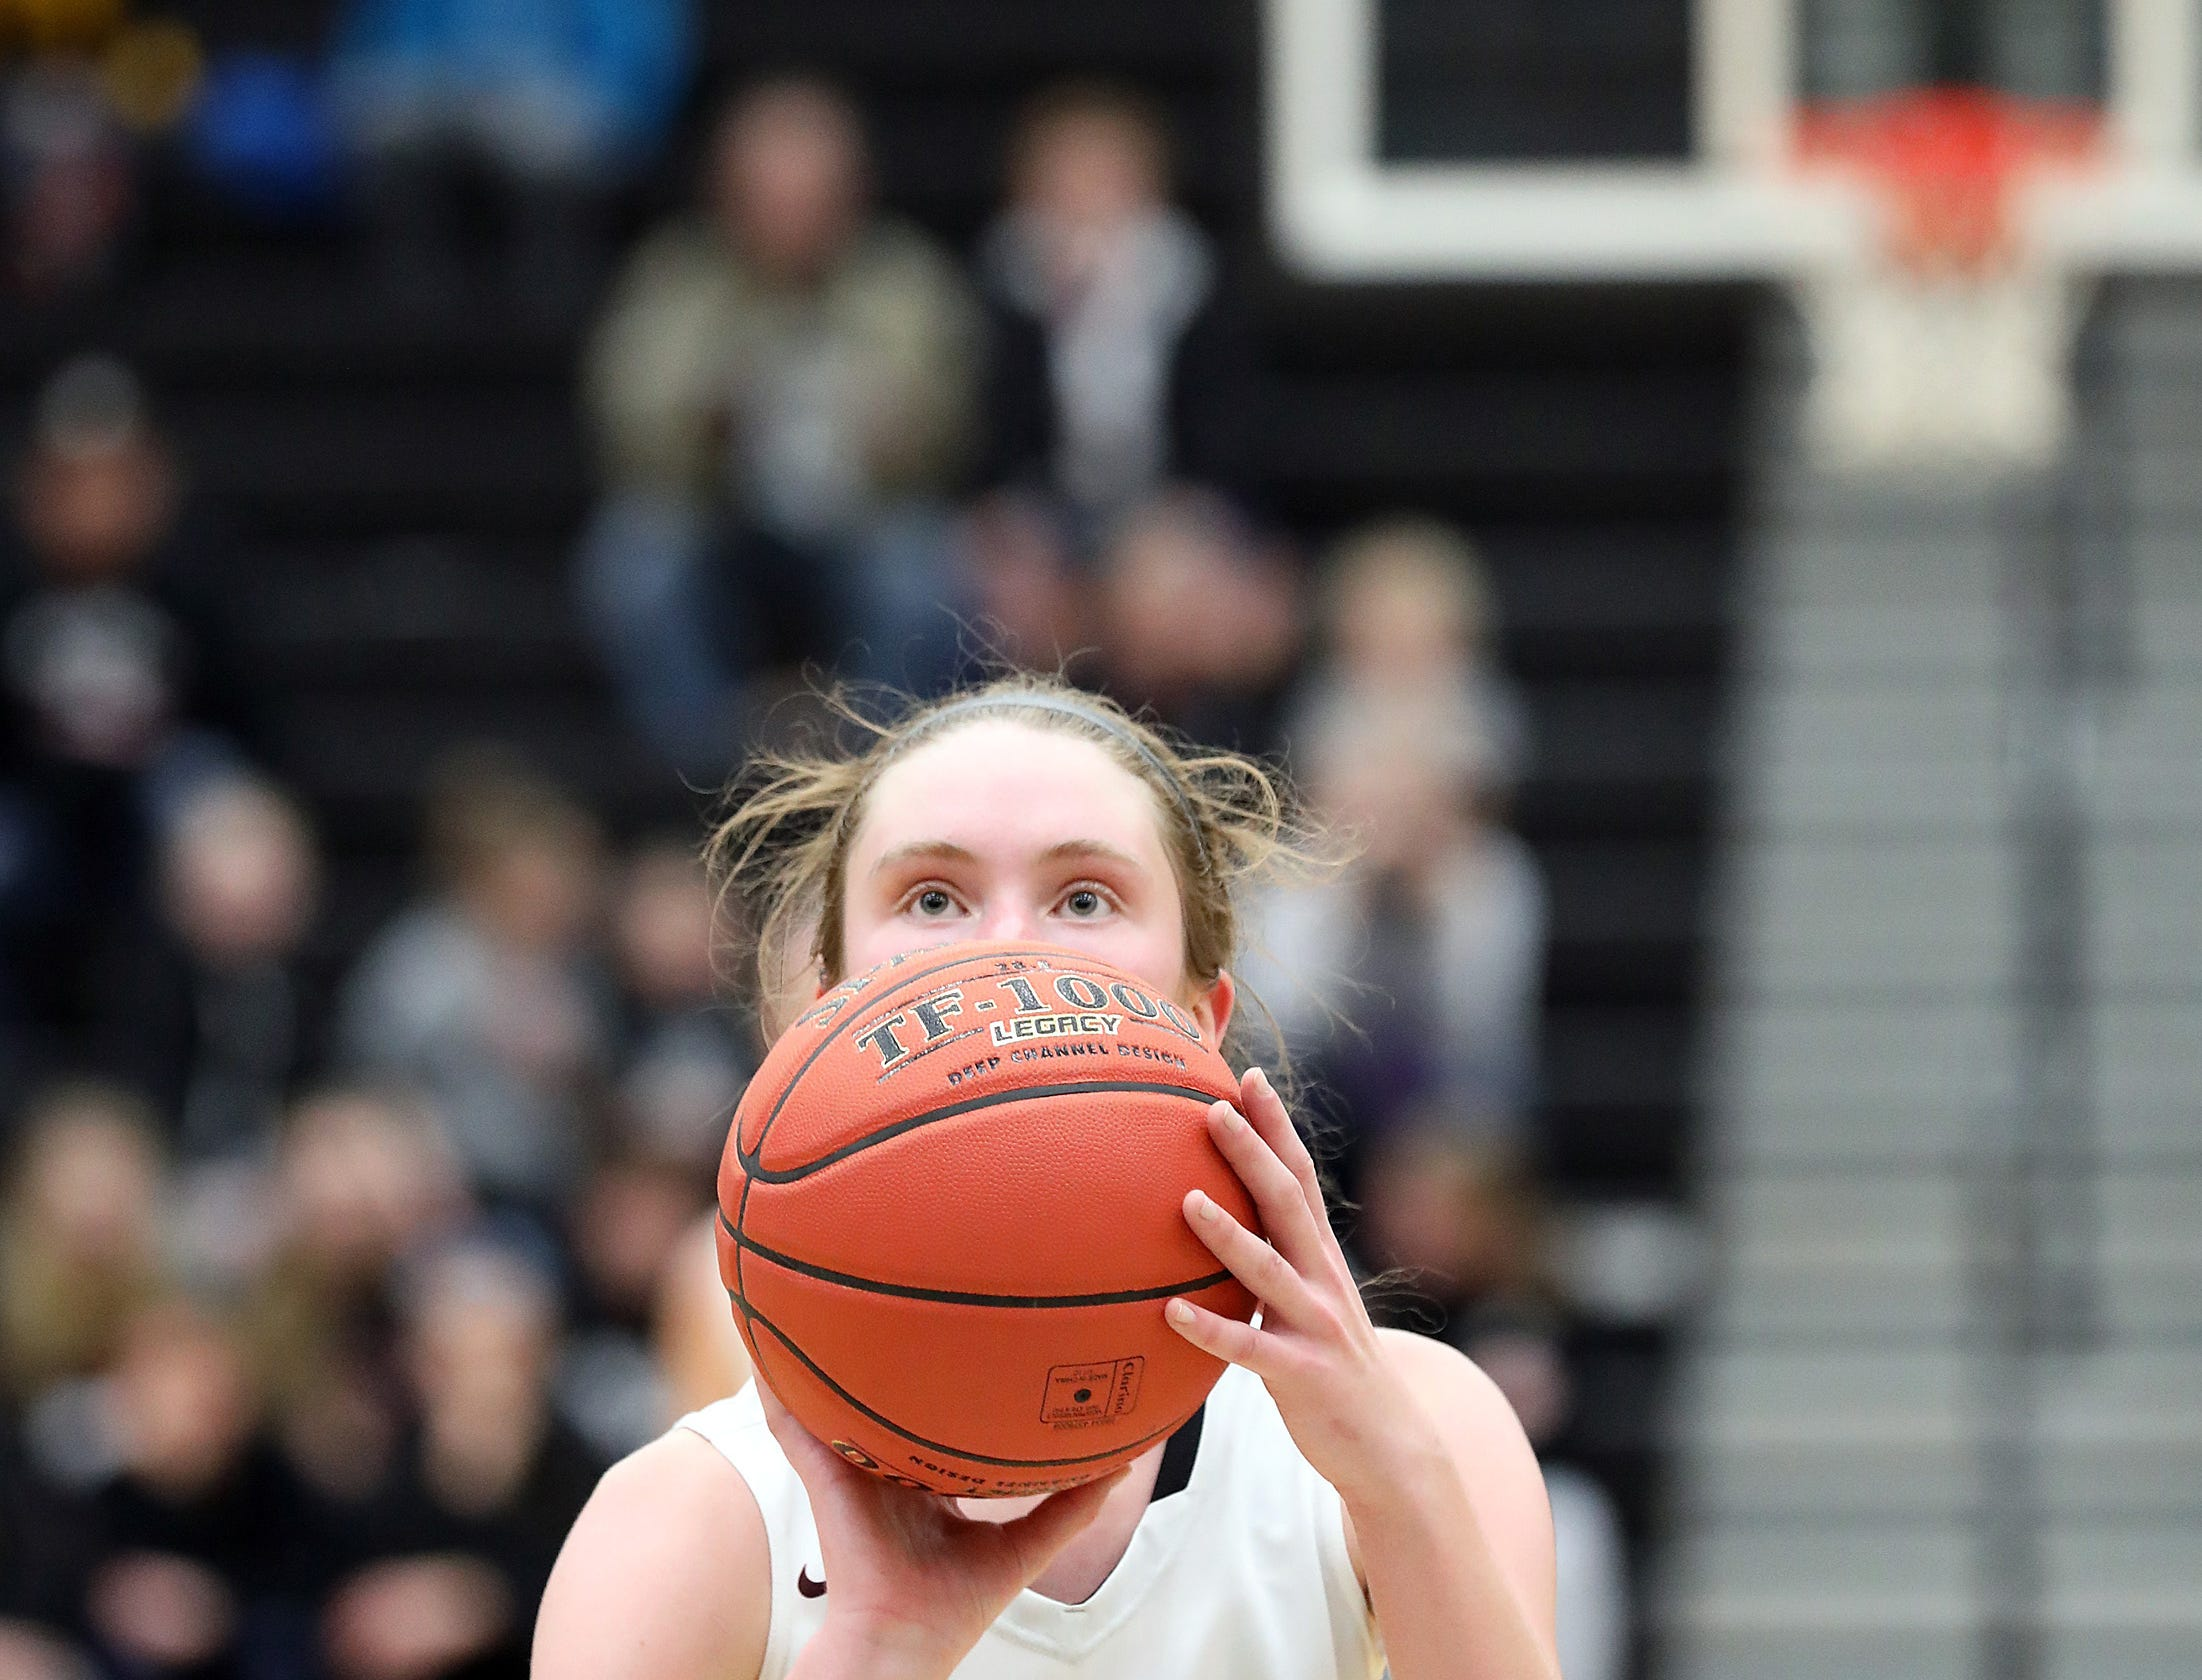 Ankeny Centennial junior Meg Burns sinks the final two free throws for the victory as the Johnston Dragons compete against the Ankeny Centennial Jaguars in high school girls basketball on Friday, Jan. 4, 2019 at Ankeny Centennial High School. Ankeny won 50 to 48.